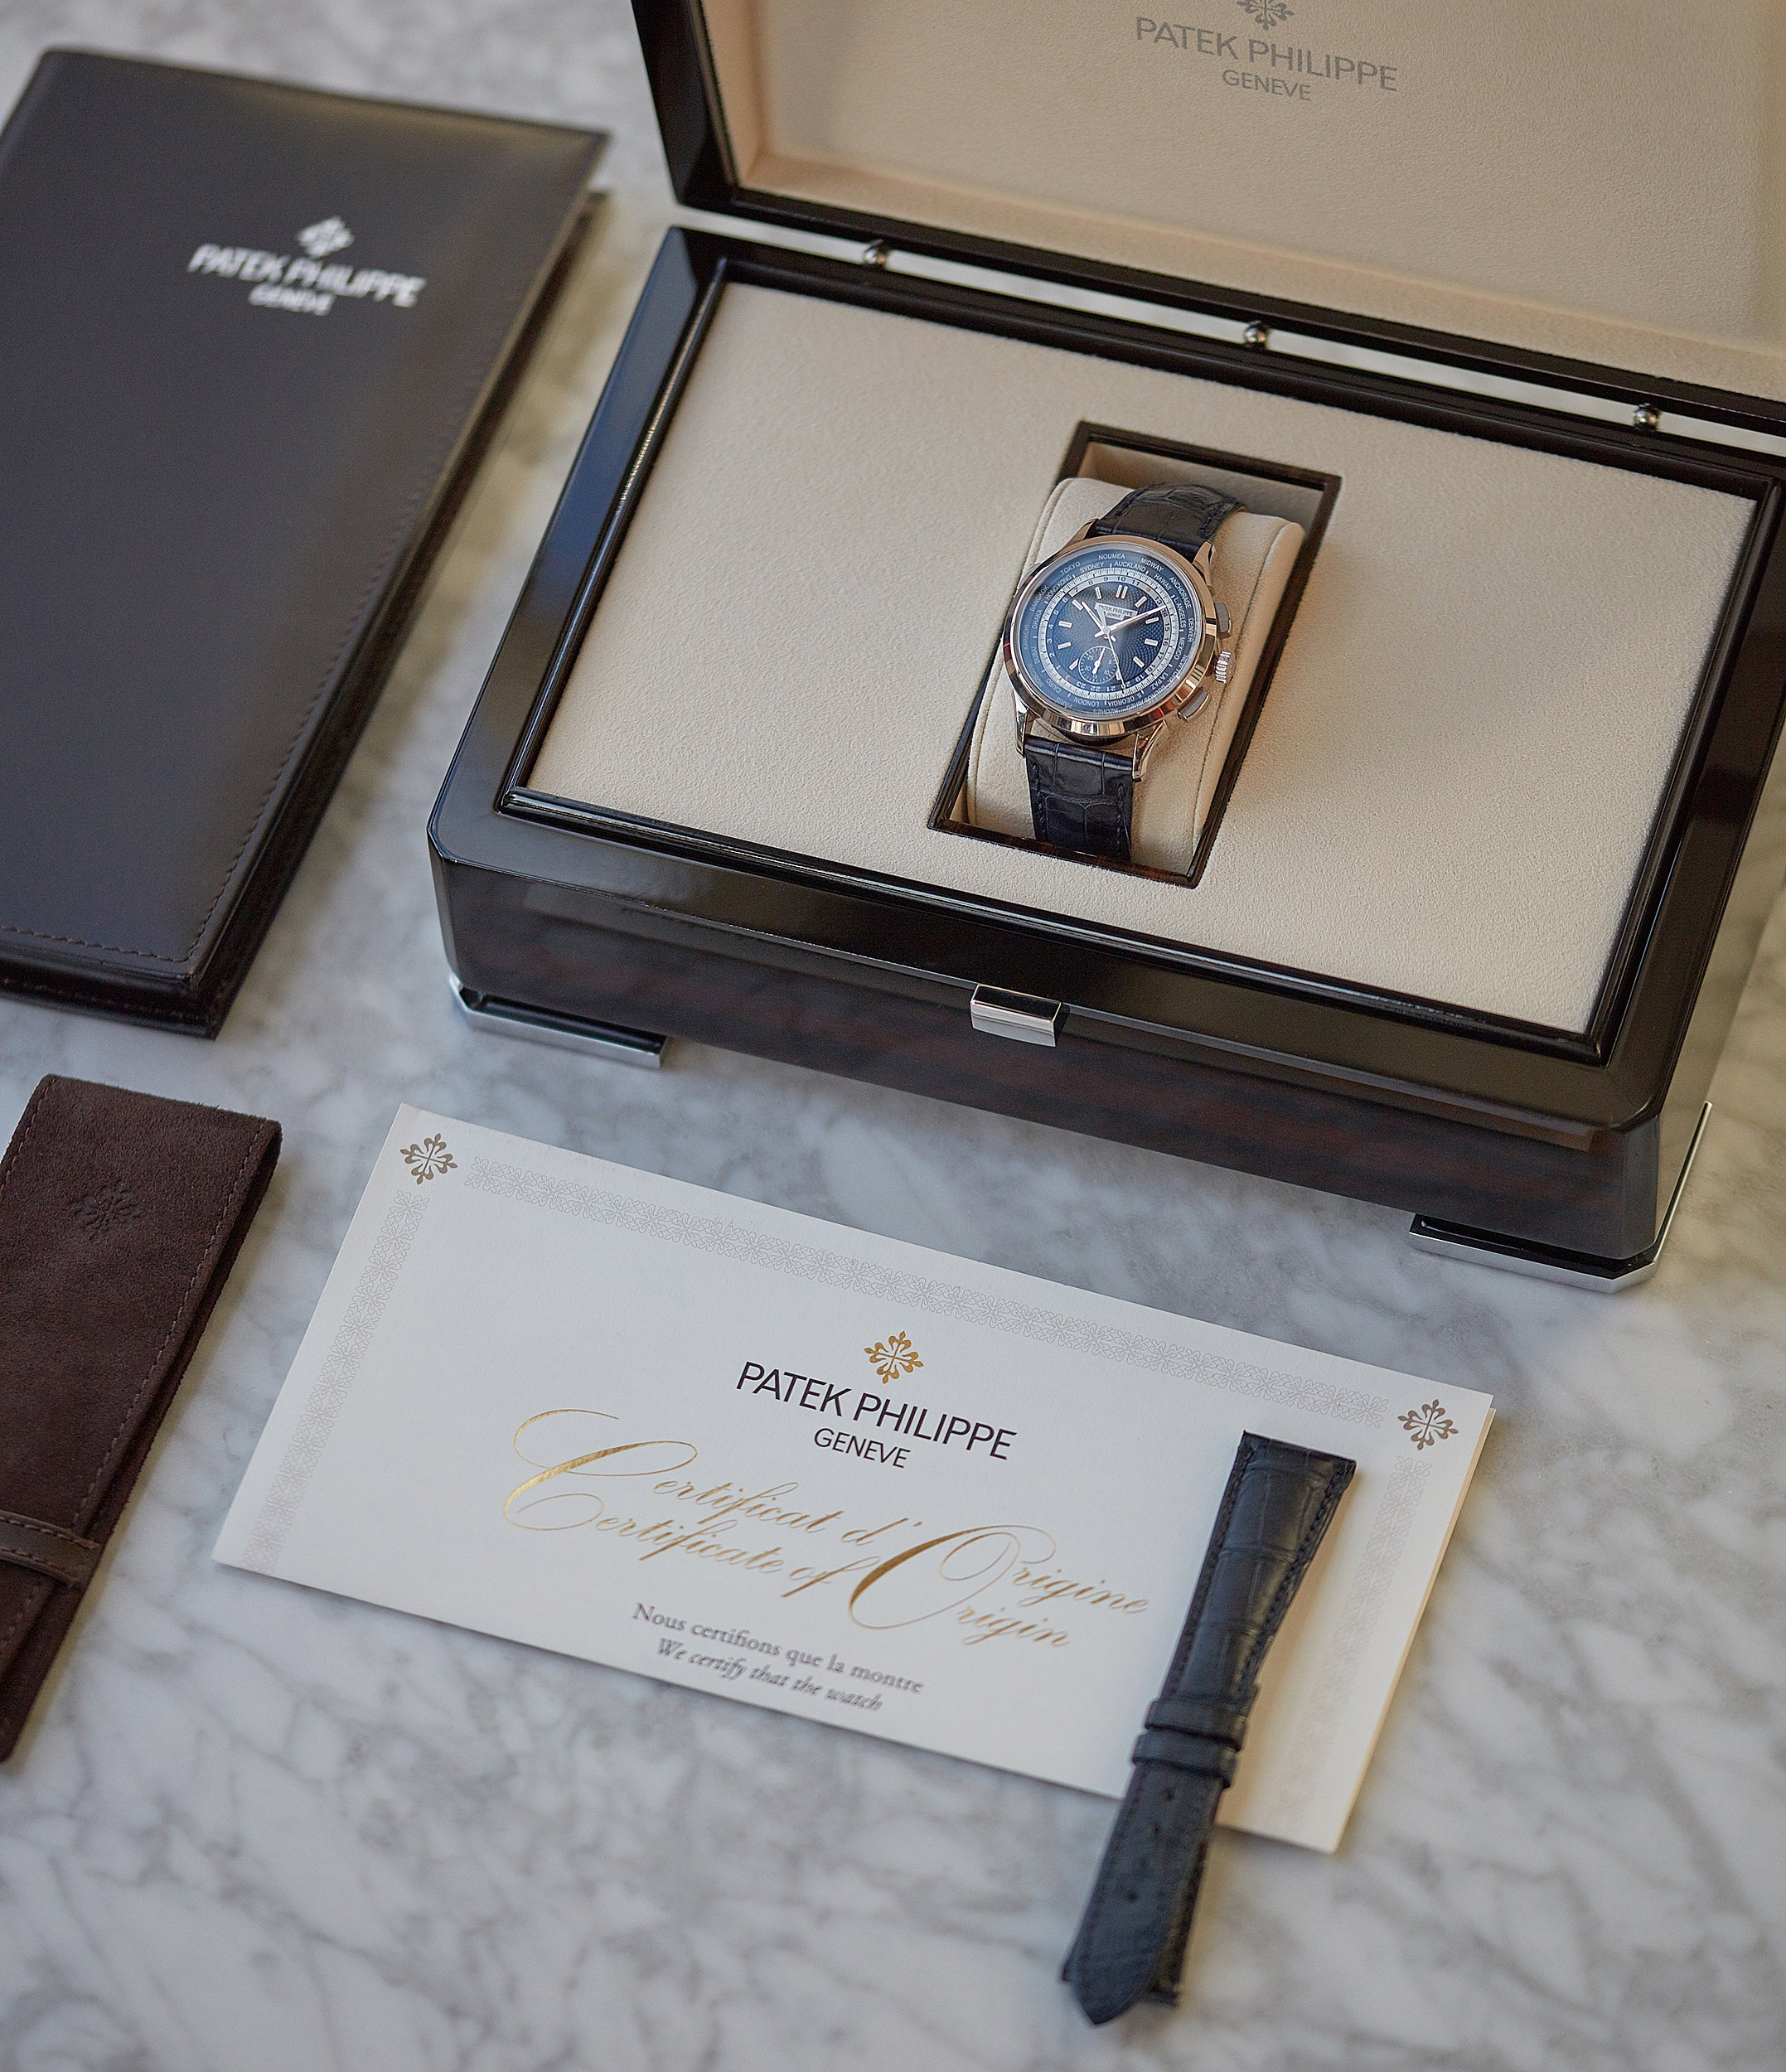 full set Patek Philippe Complications World Time Chronograph 5930G-001 white gold watch blue dial for sale online at A Collected Man London